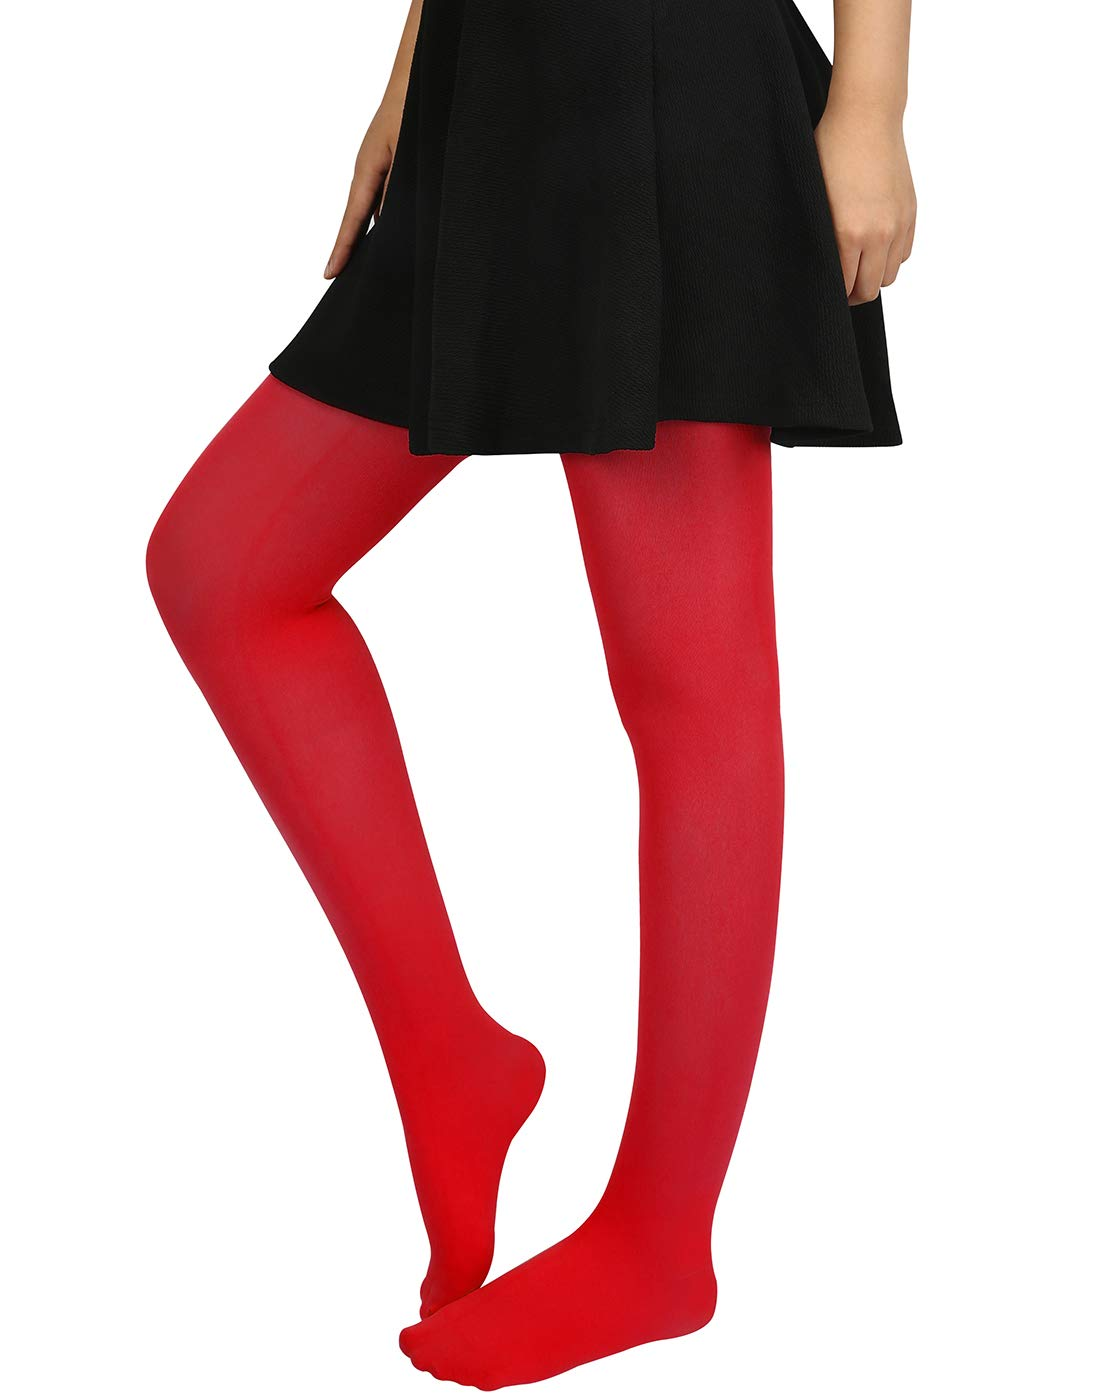 HDE Womens Tights – Opaque Tights for Women – Colorful Stockings for Girls